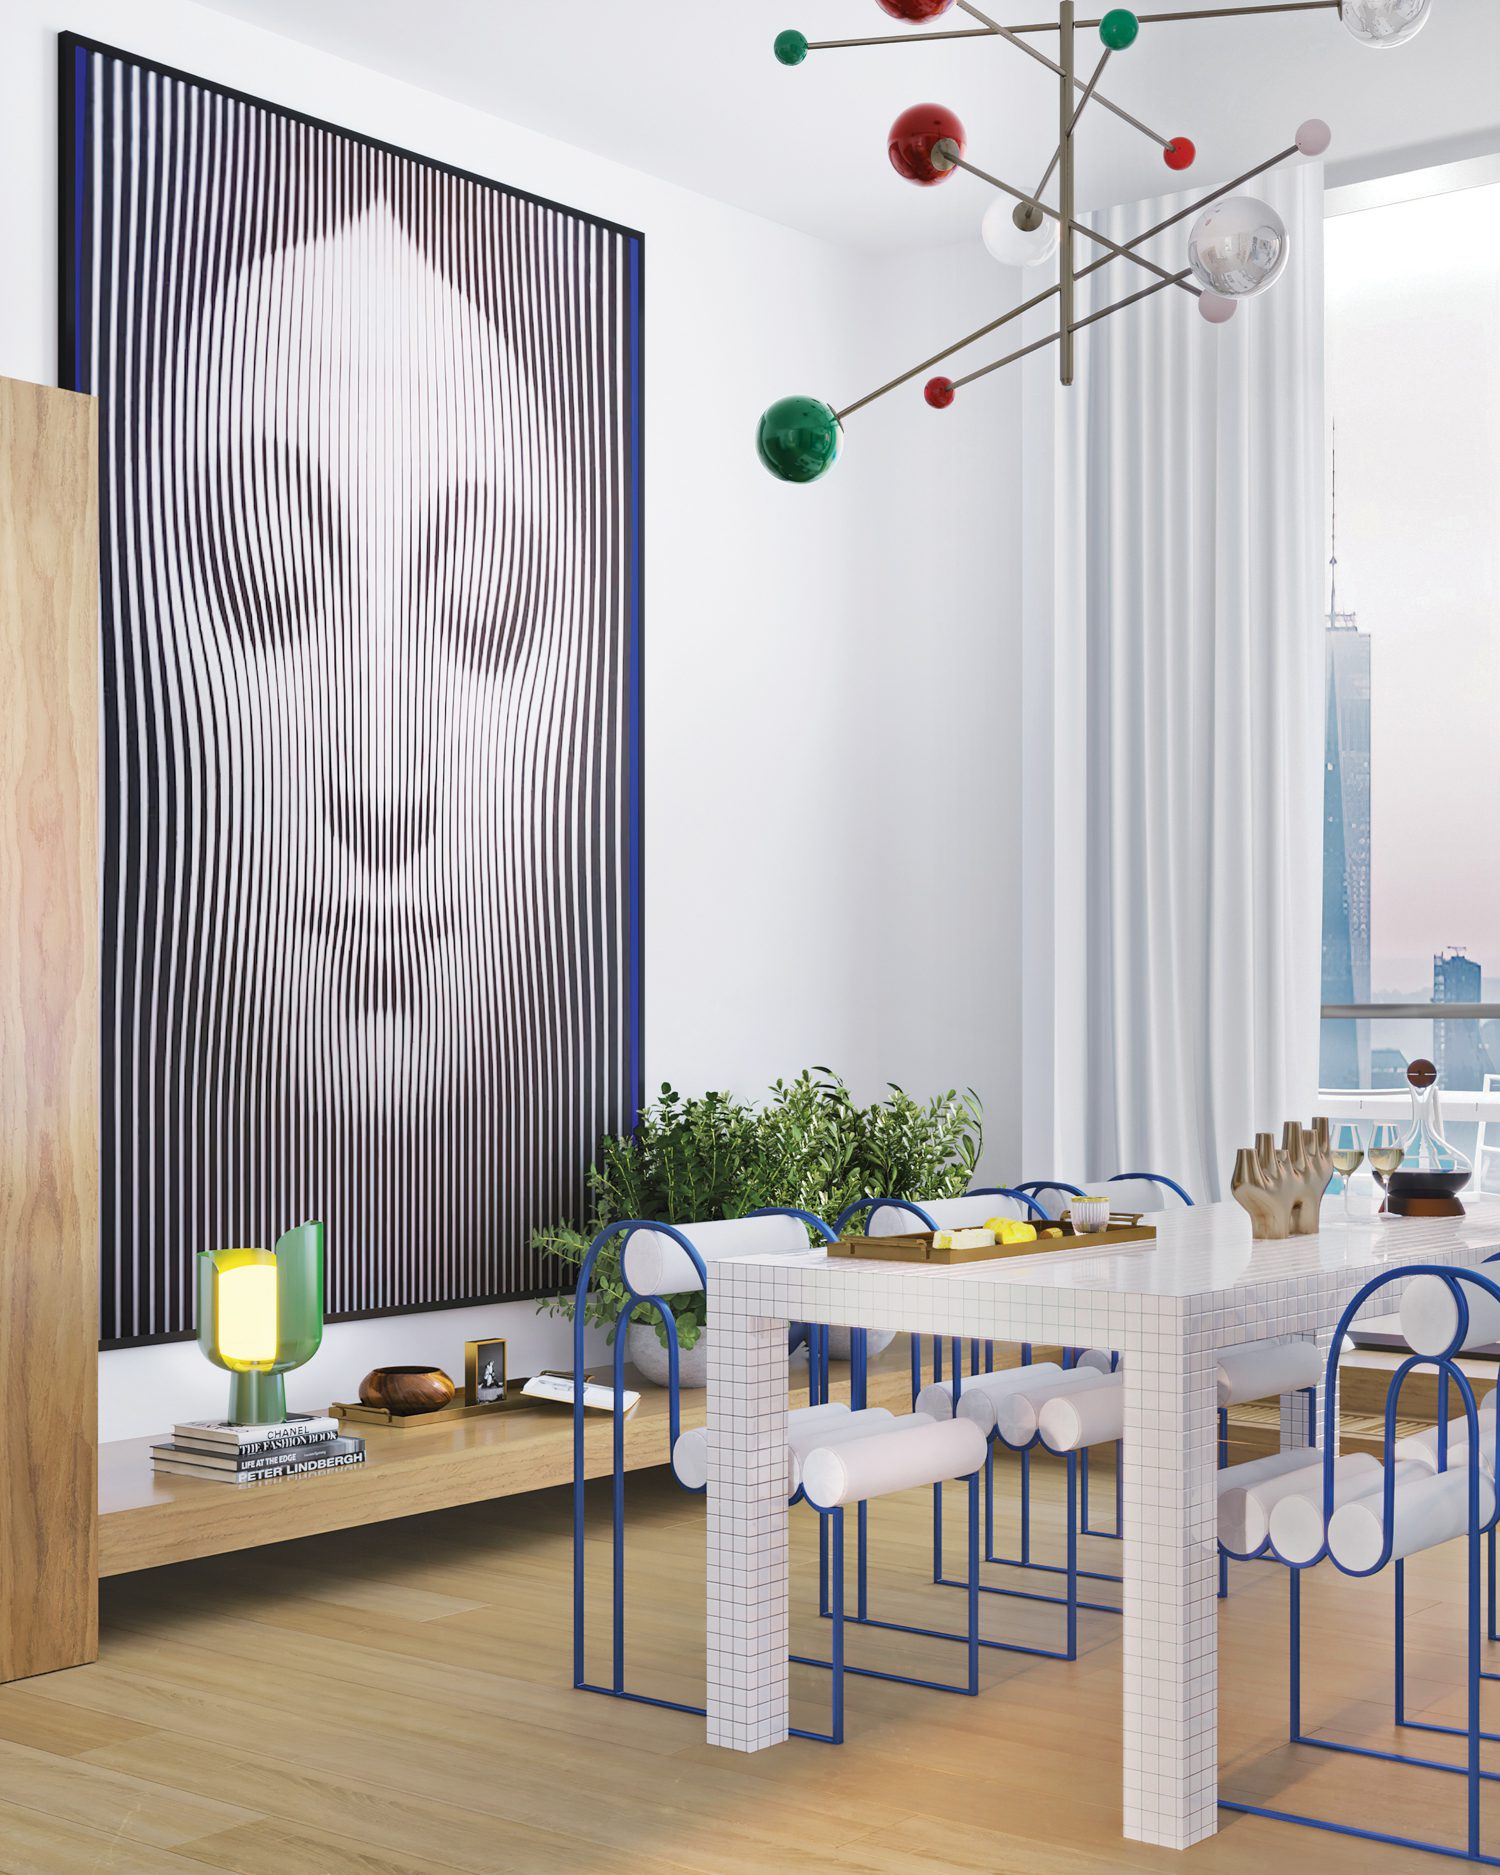 The latter is furnished with a Superstudio Quaderna table, Apollo chairs by Bohinc Studio, a custom pendant fixture, and Egor Ostrov's print on canvas.